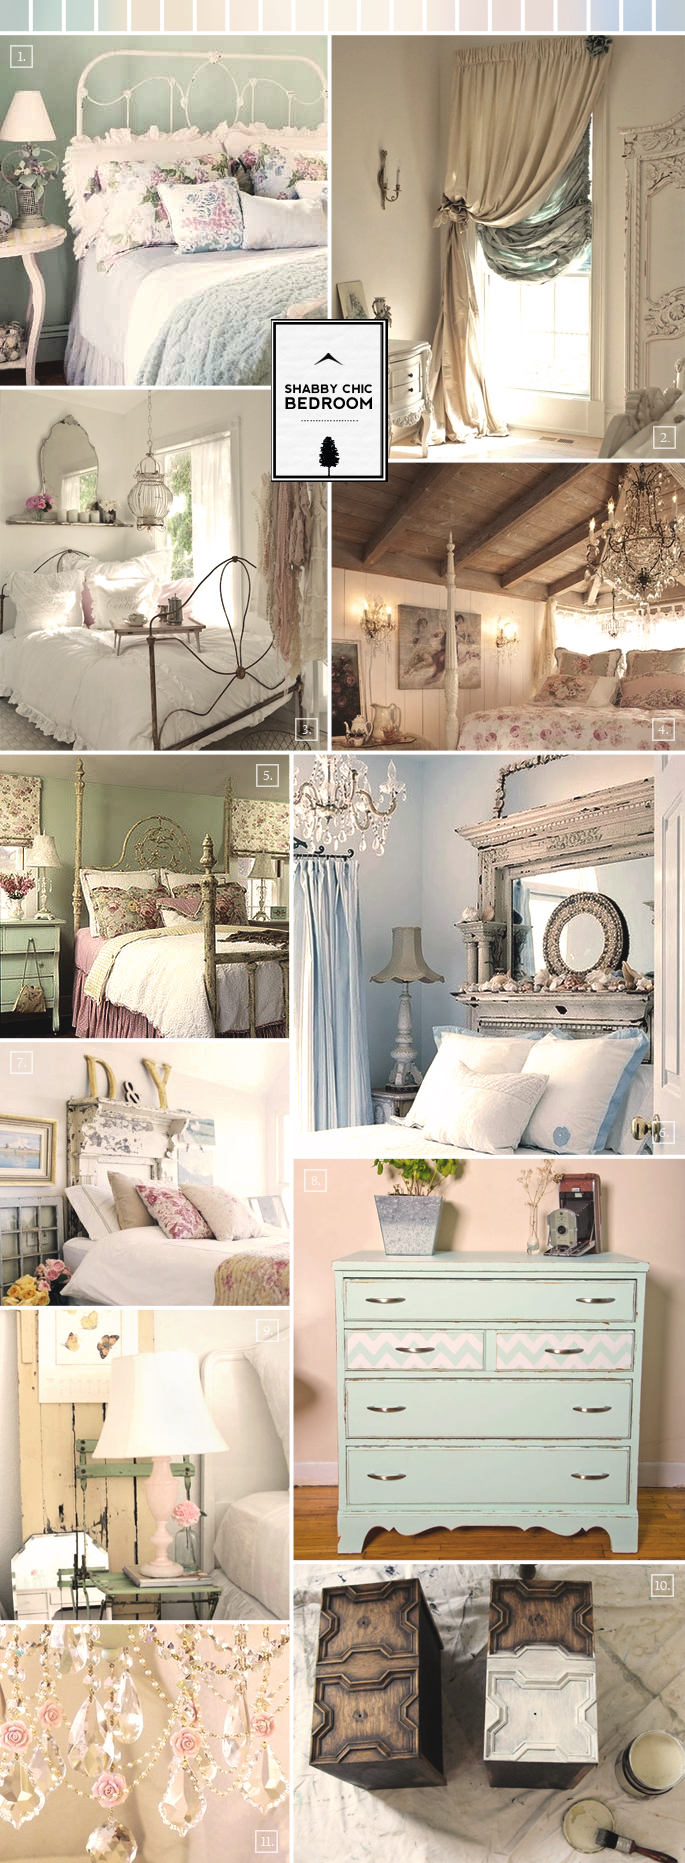 Shabby chic bedroom ideas and decor inspiration home Shabby chic bedroom accessories